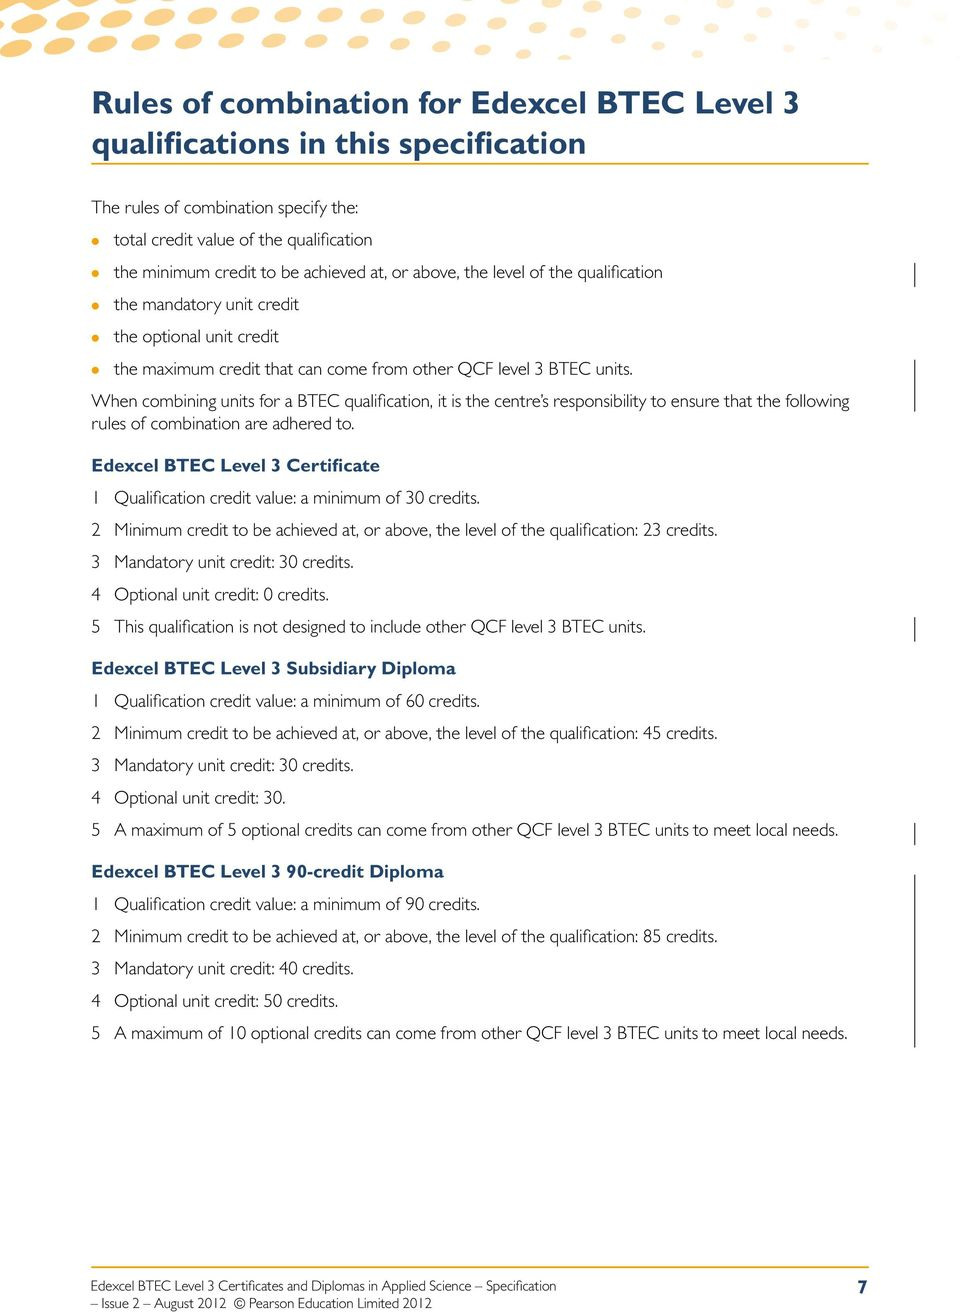 When combining units for a BTEC qualification, it is the centre s responsibility to ensure that the following rules of combination are adhered to.